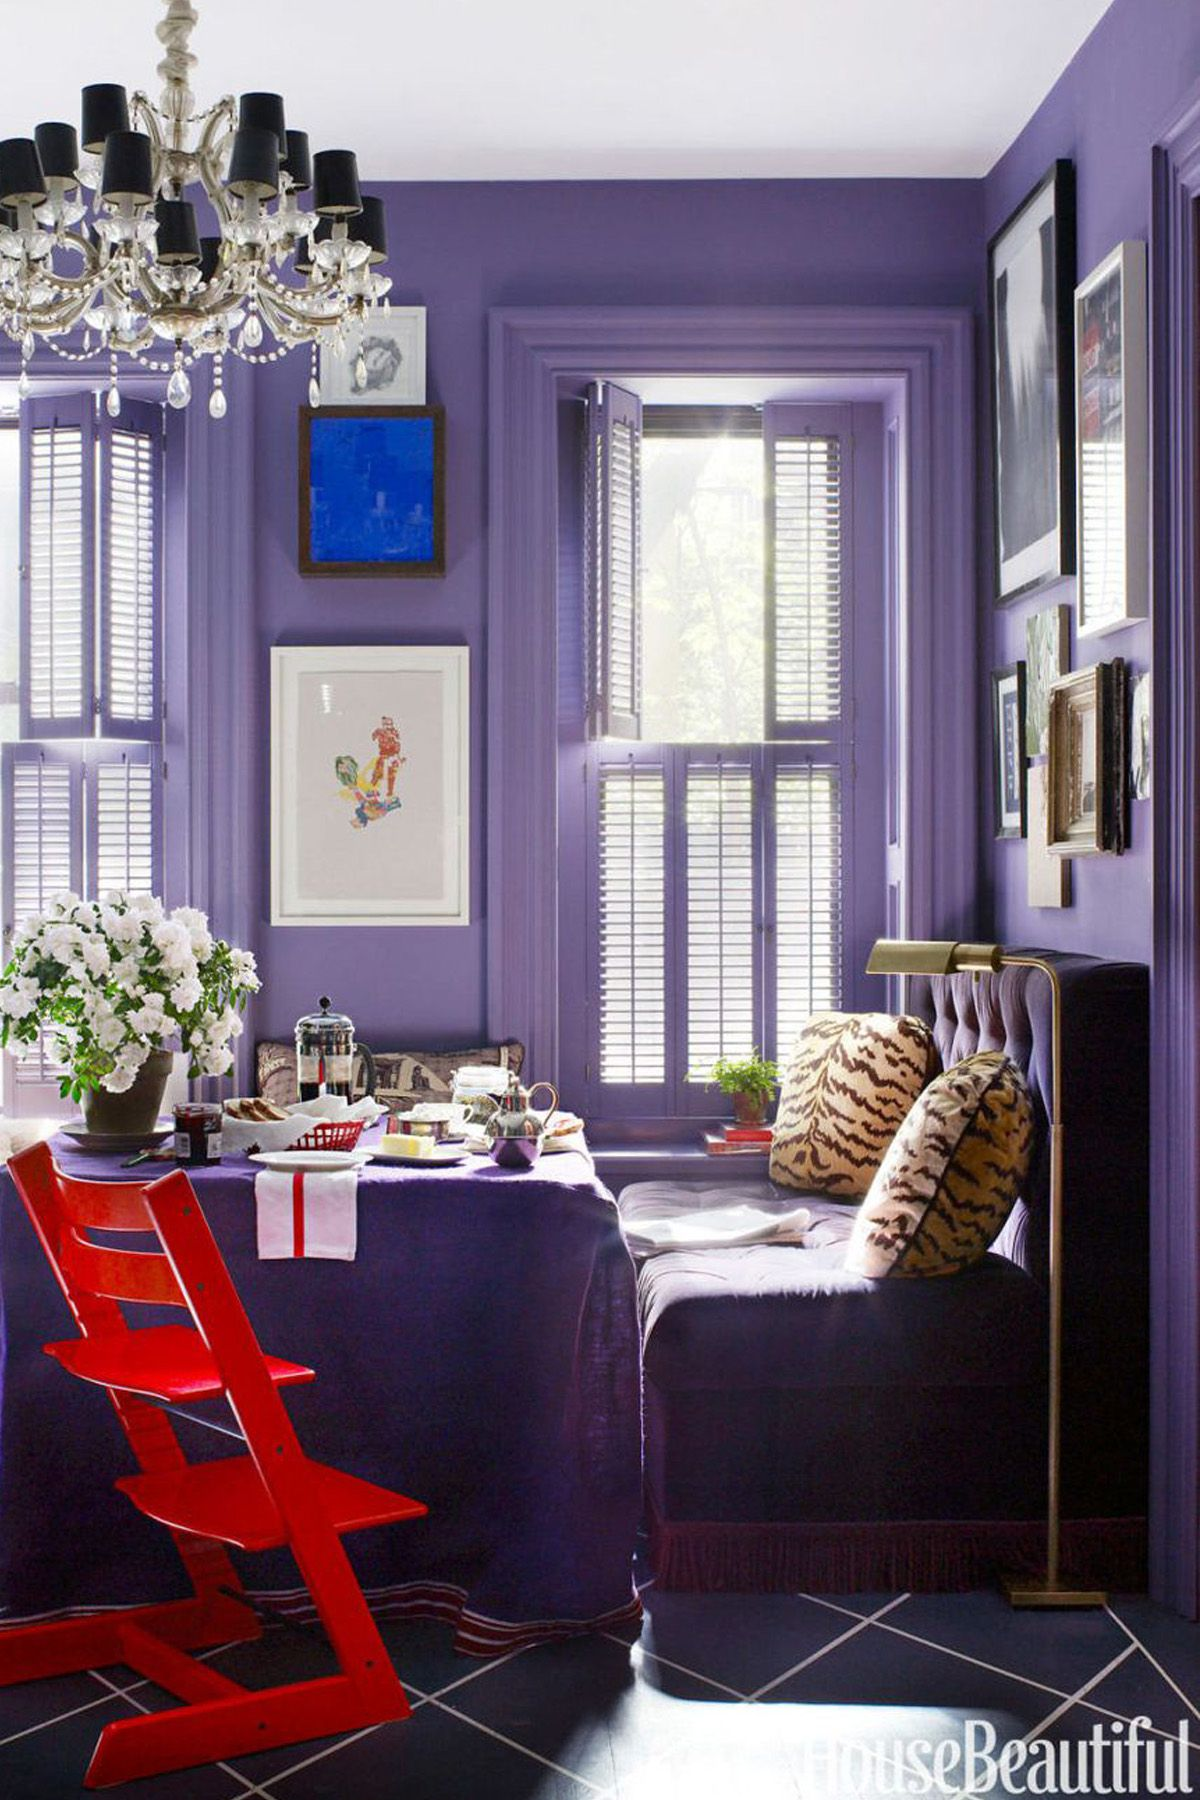 20 best new color combinations good color combos for 2019 rh housebeautiful com color combination for room painting color combination for room with pink